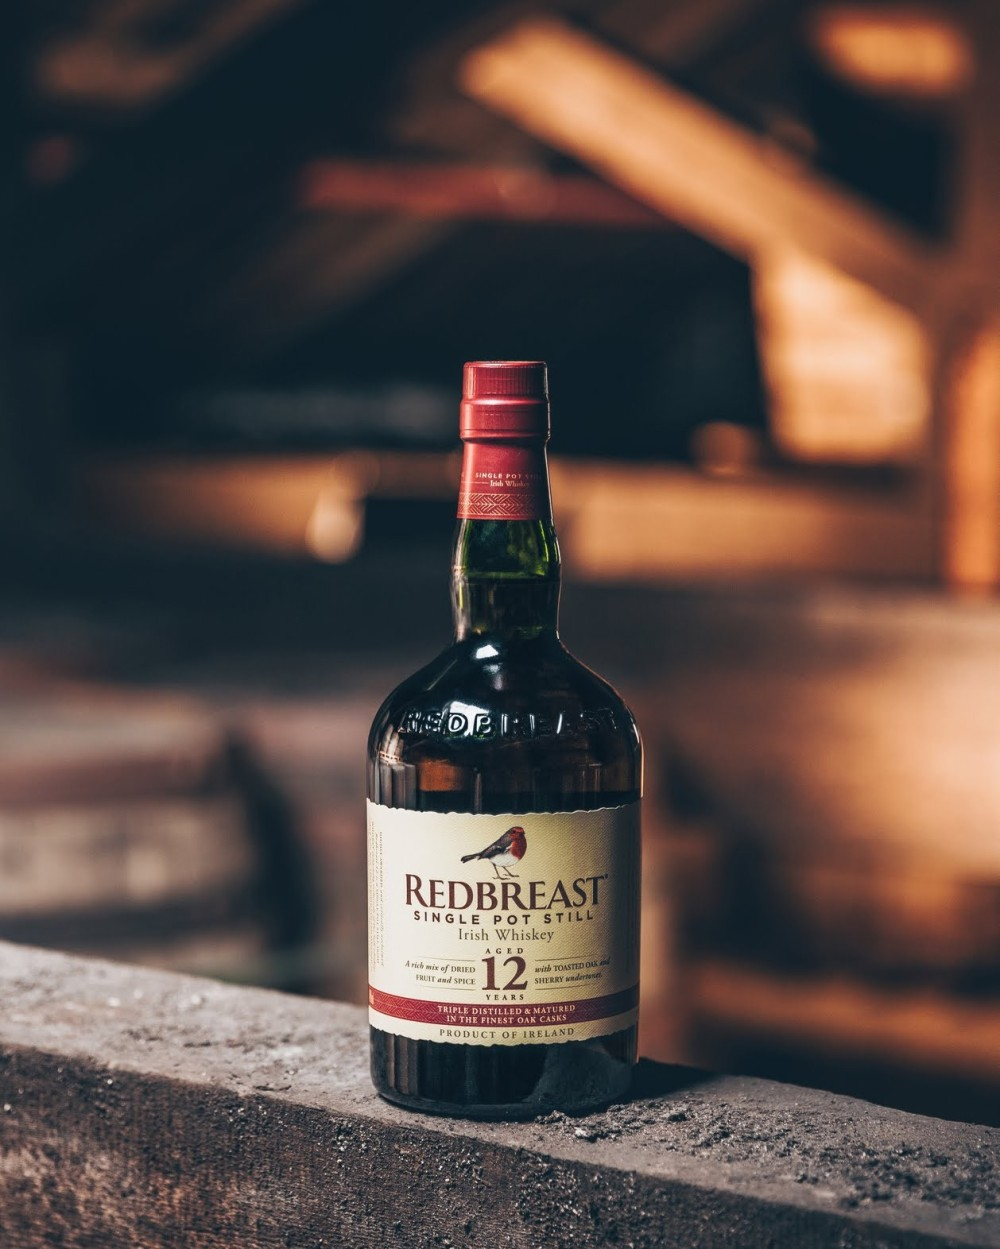 previewlarge-redbreast_q2_social_assets-2-2